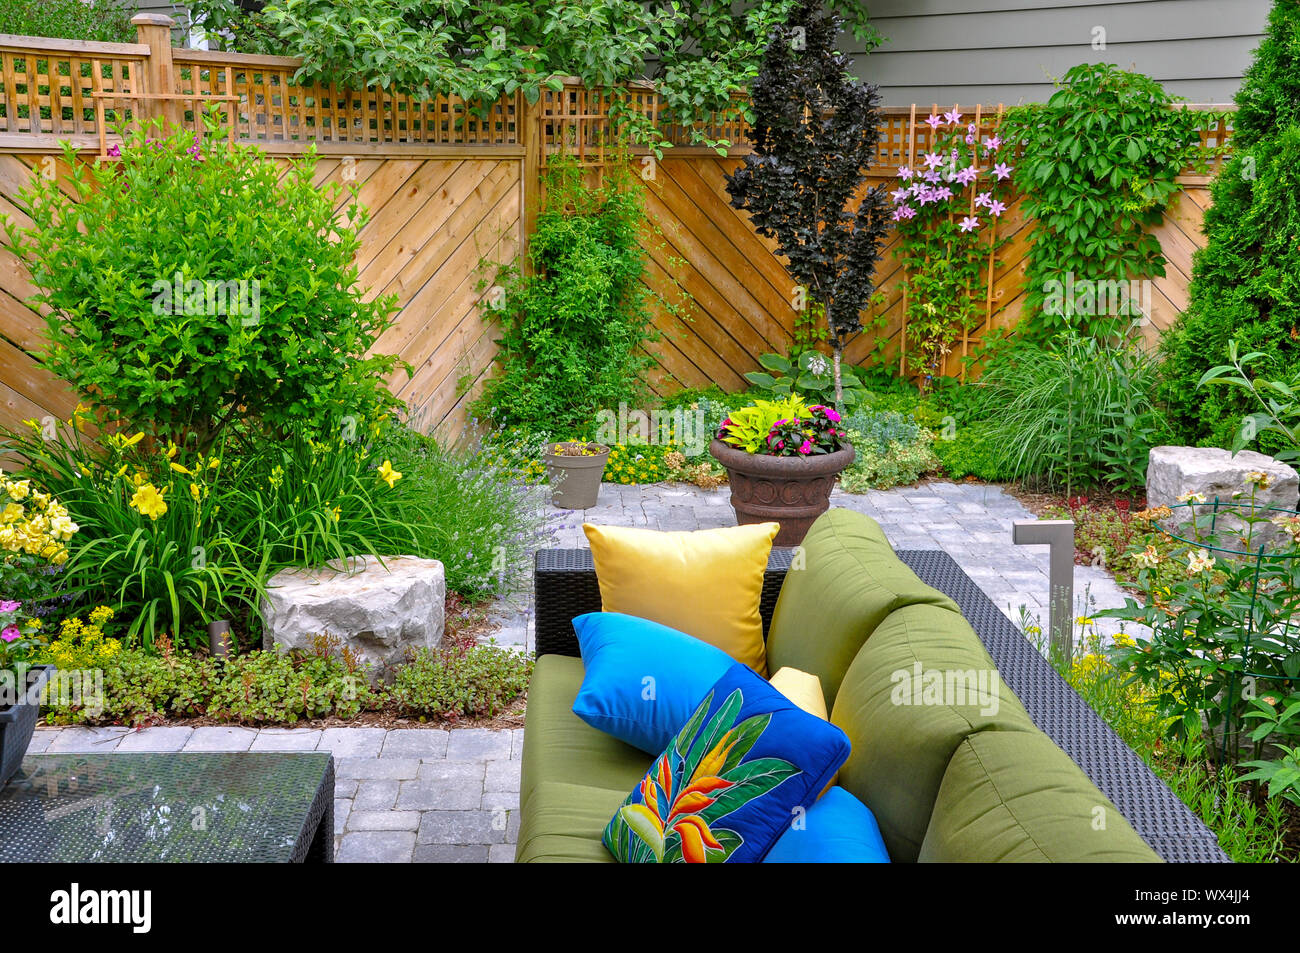 This Beautiful Small Urban Backyard Garden Features A Tumbled